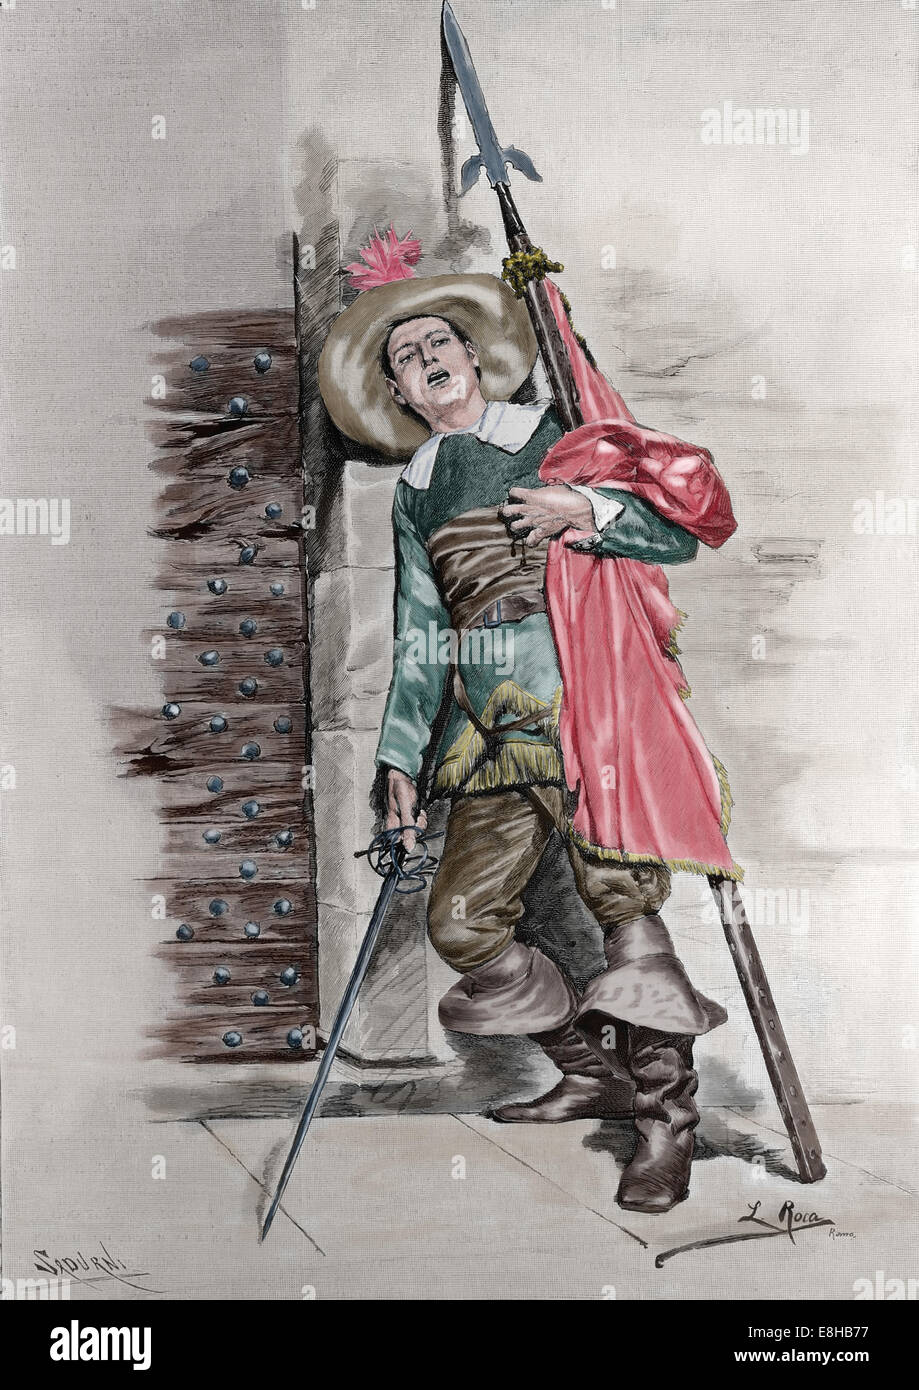 Patriotic. Soldier. Drawing by L. Roca. Engraving by Sardurni. Artistic Illustration, published in Spanish, 1885. - Stock Image